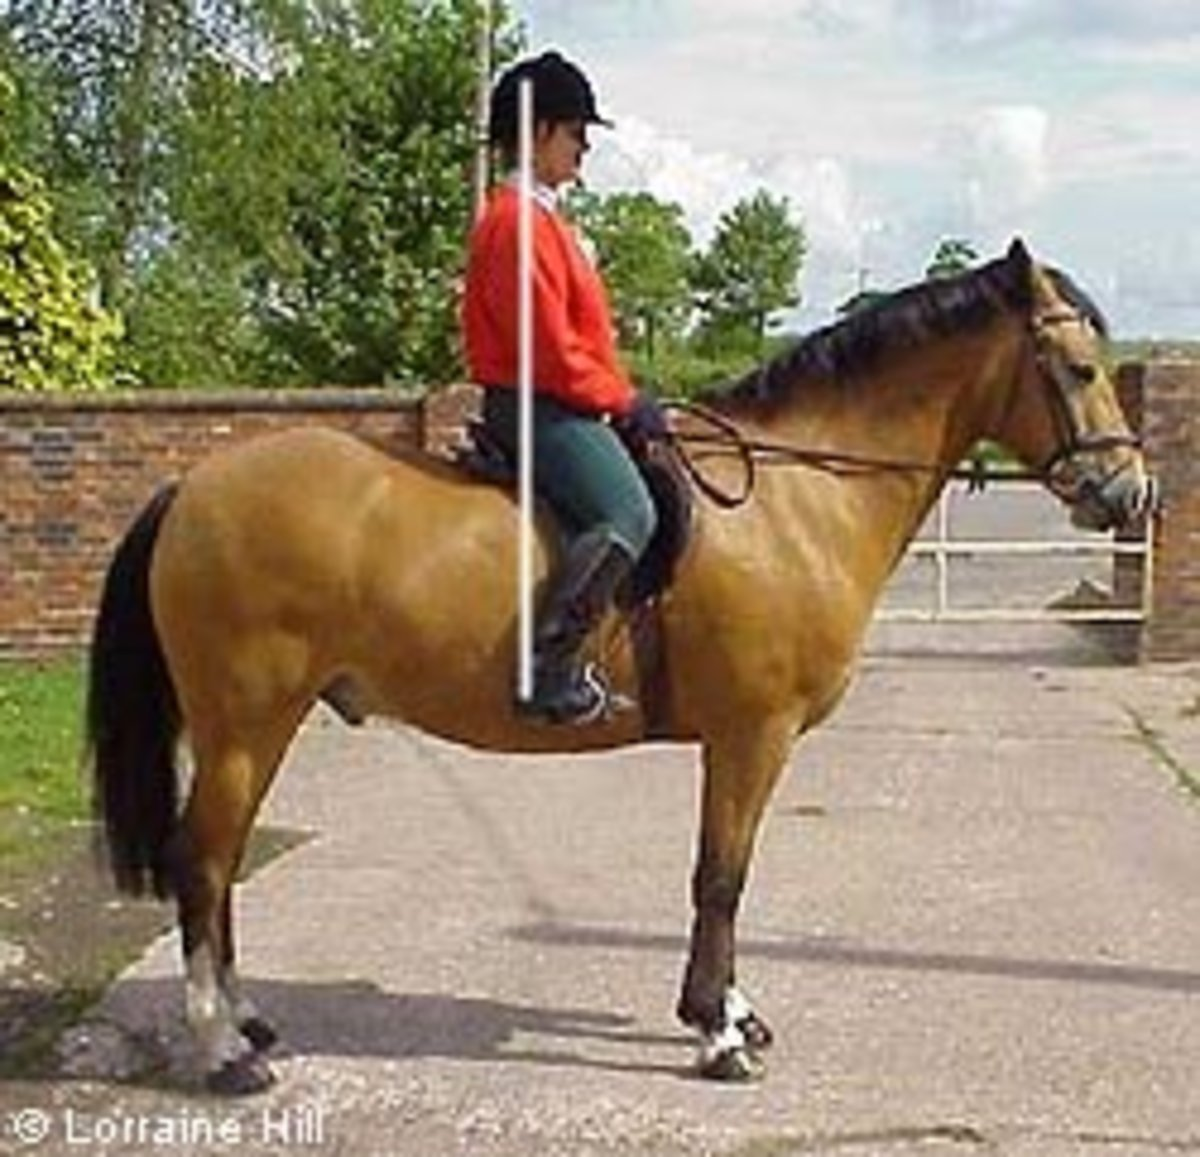 Horse riding lessons: Position of the lower leg